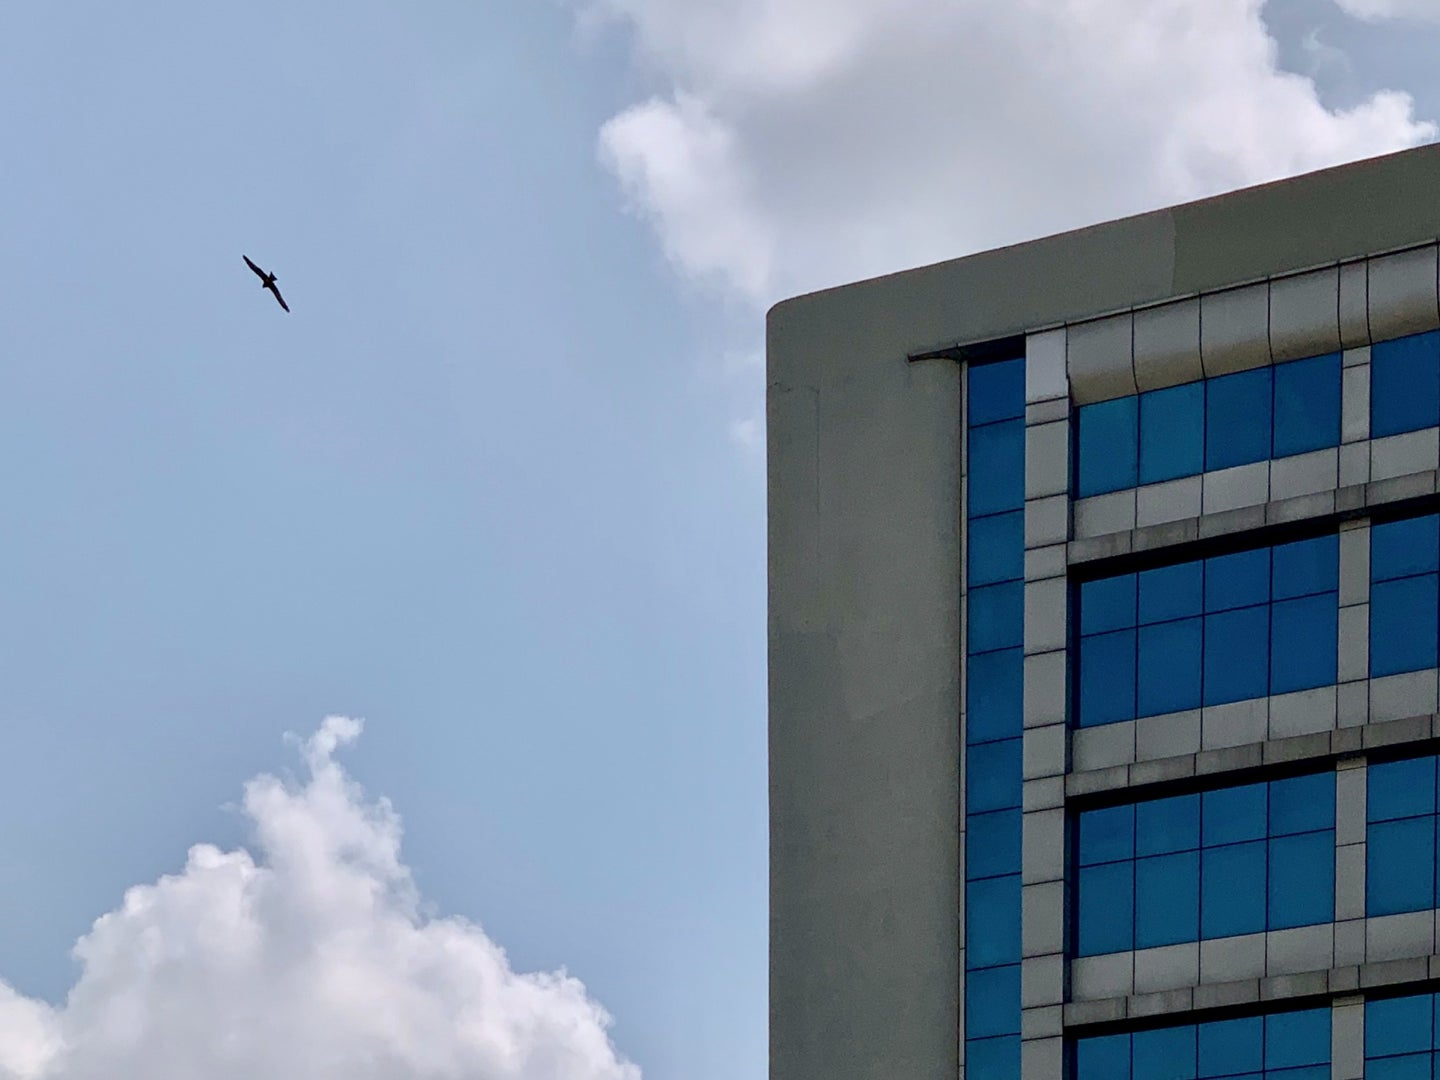 A bird flying near a concrete commercial building with large windows on a sunny day.